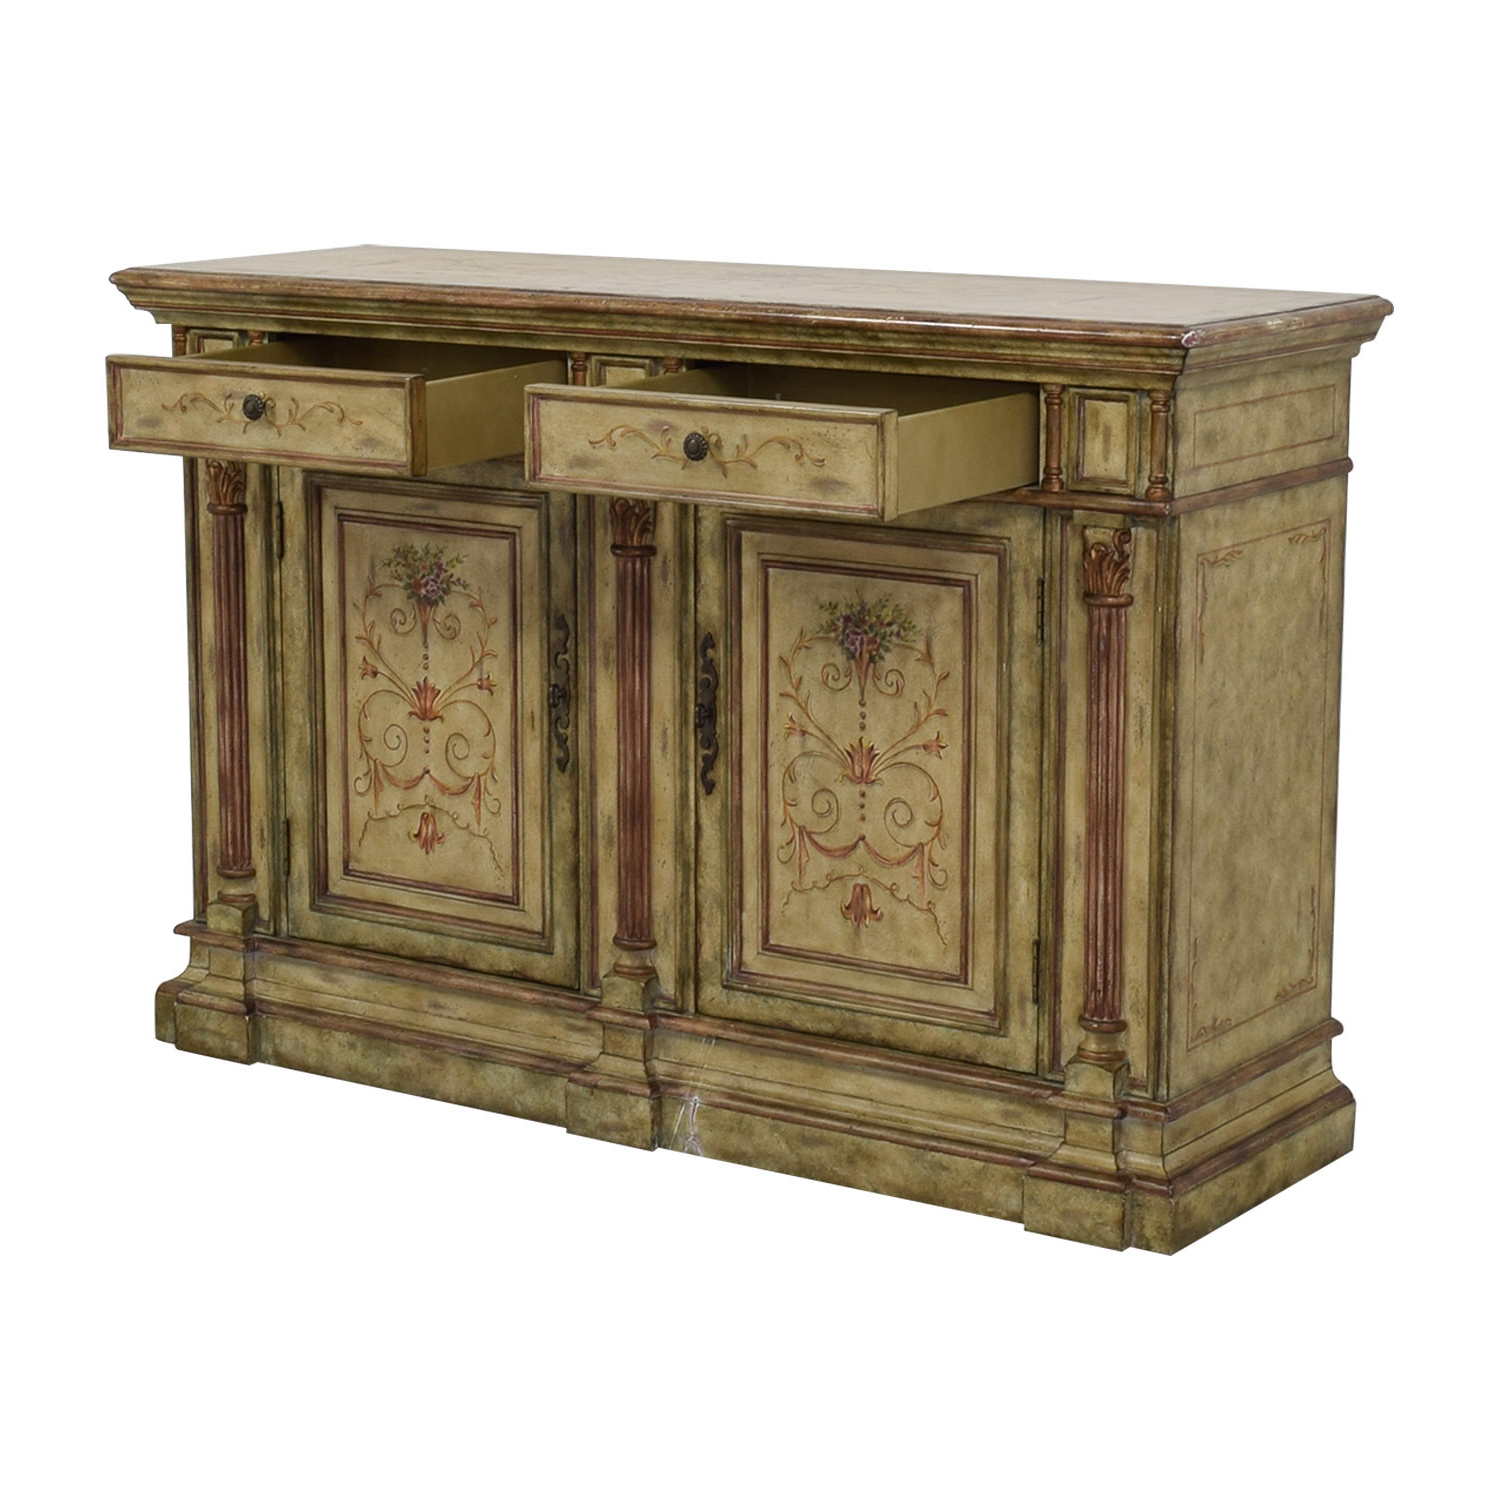 78% Off – Hooker Furniture Hooker Furniture Seven Seas Creme Scroll Painted Sideboard / Storage Throughout Seven Seas Asian Sideboards (View 6 of 20)